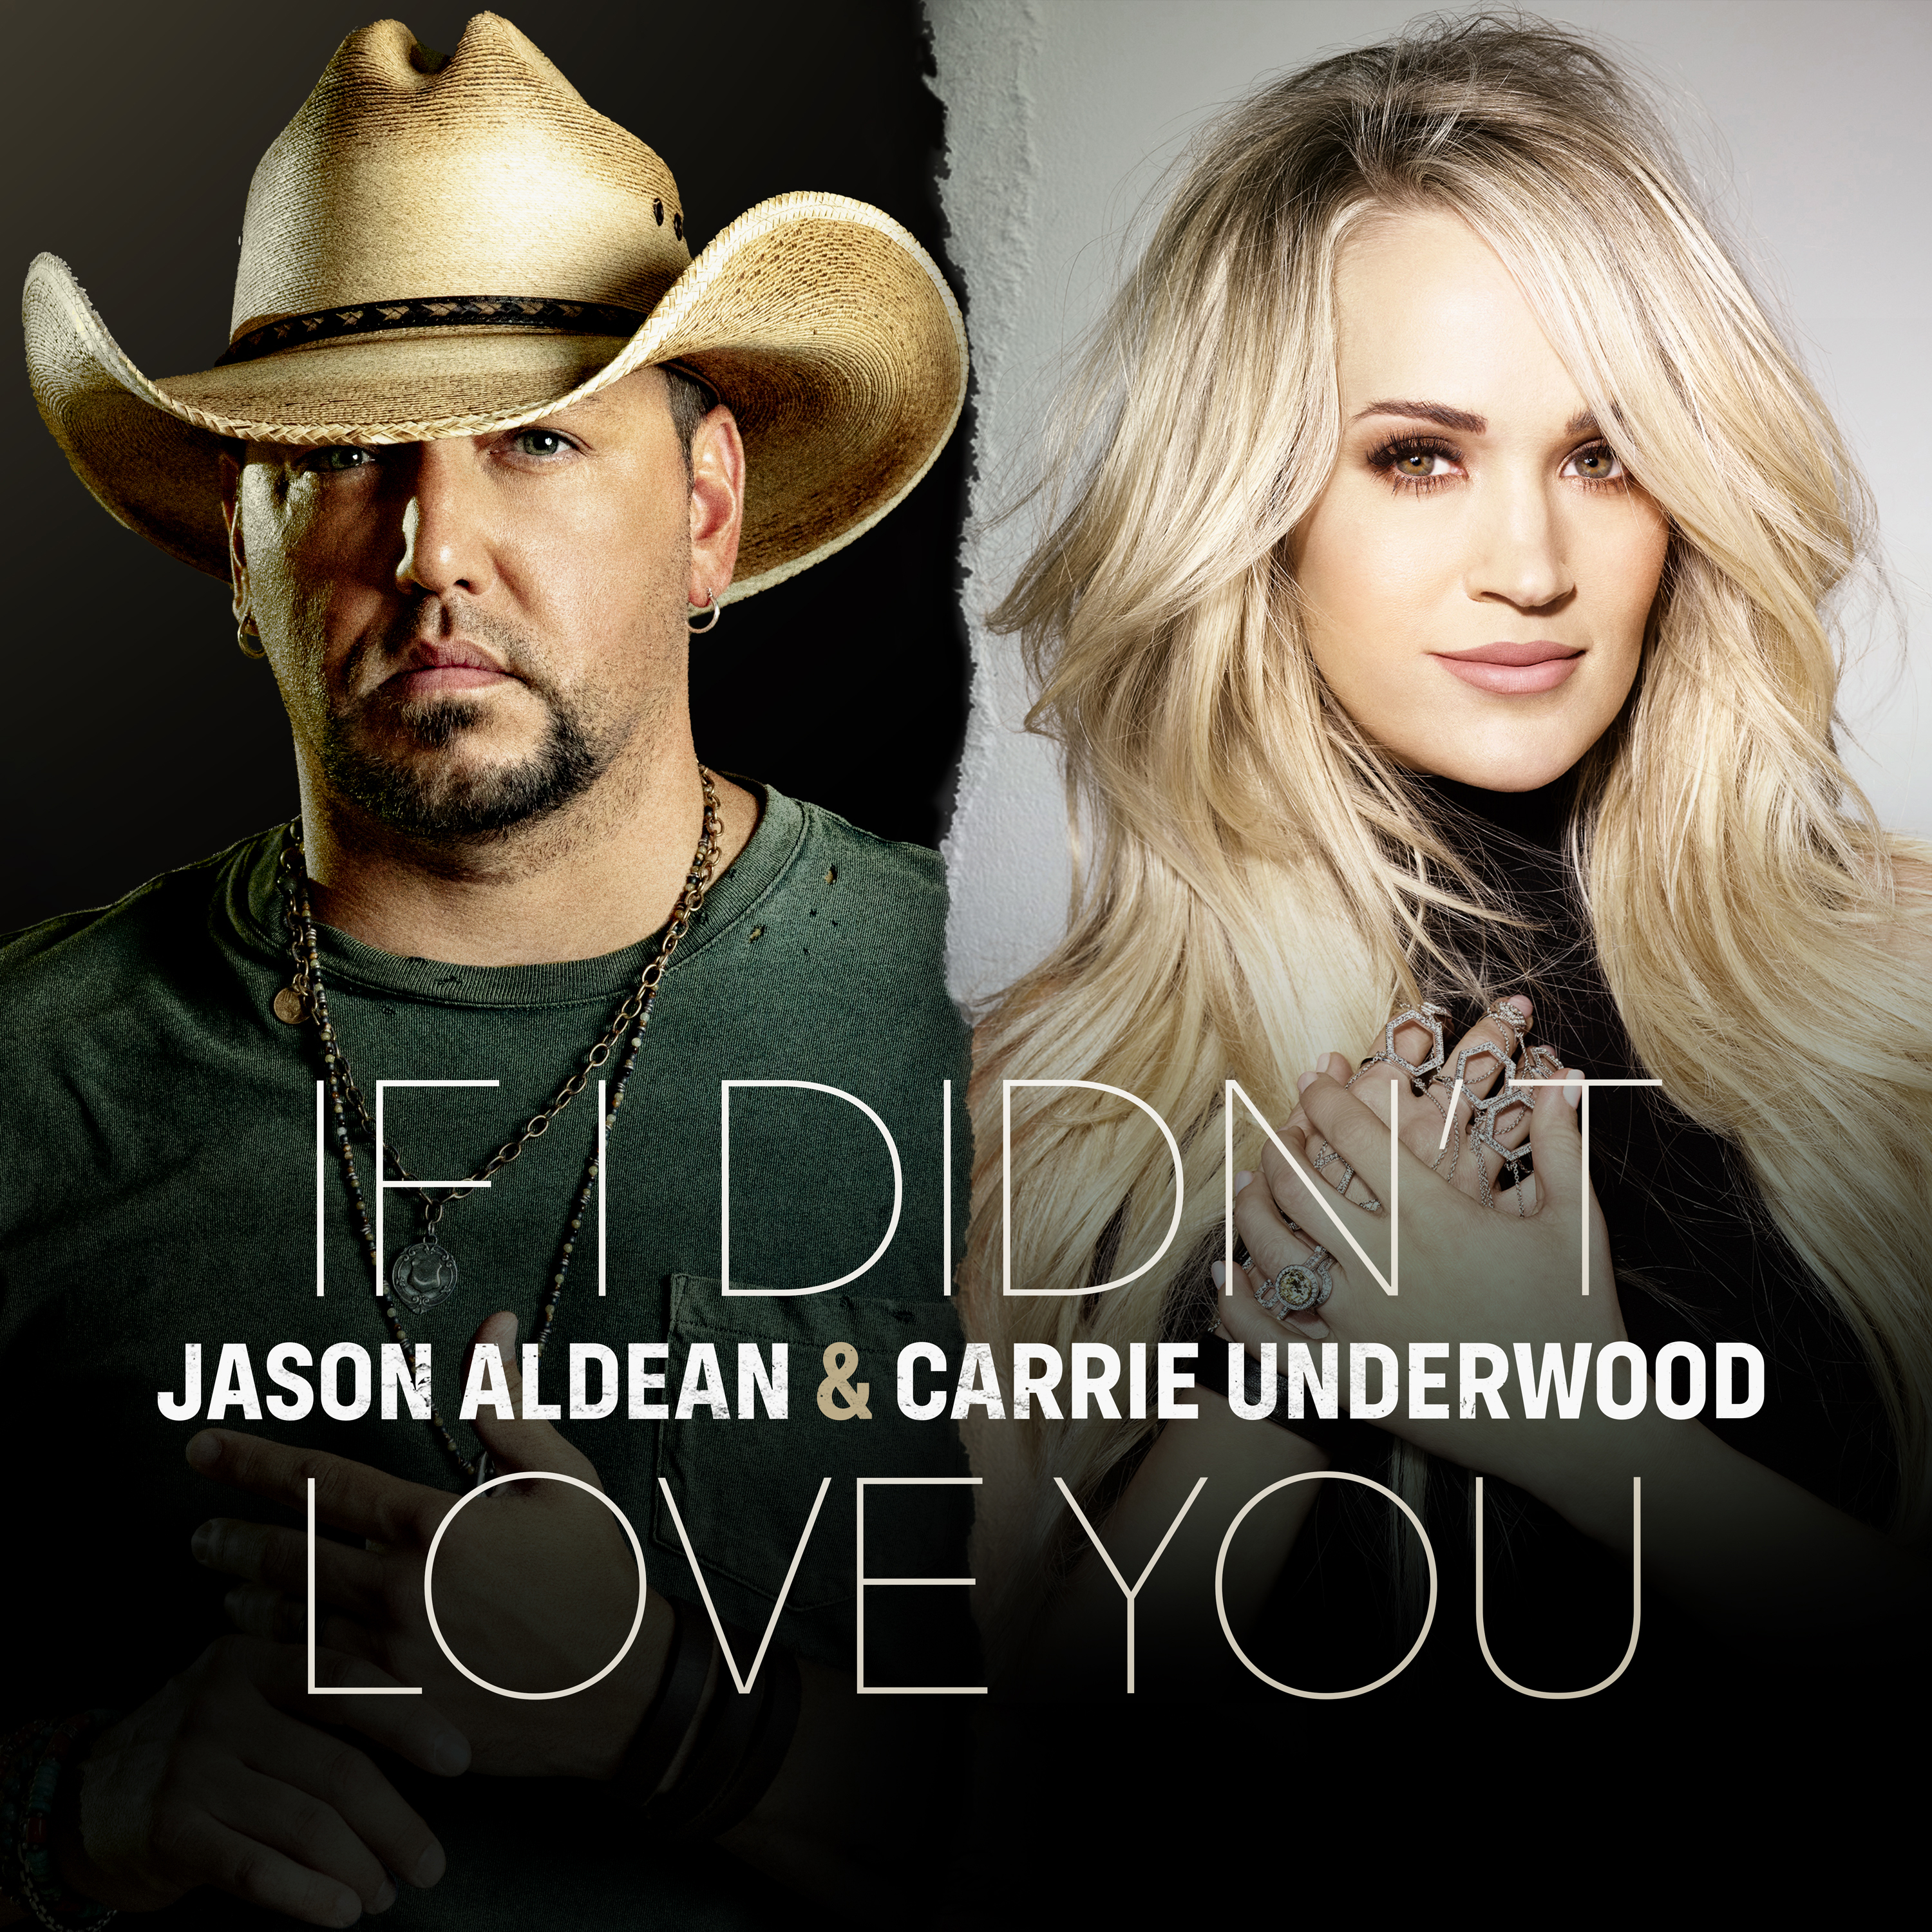 """LISTEN TO JASON ALDEAN'S NEW SINGLE WITH CARRIE UNDERWOOD, """"IF I DIDN'T LOVE YOU"""""""